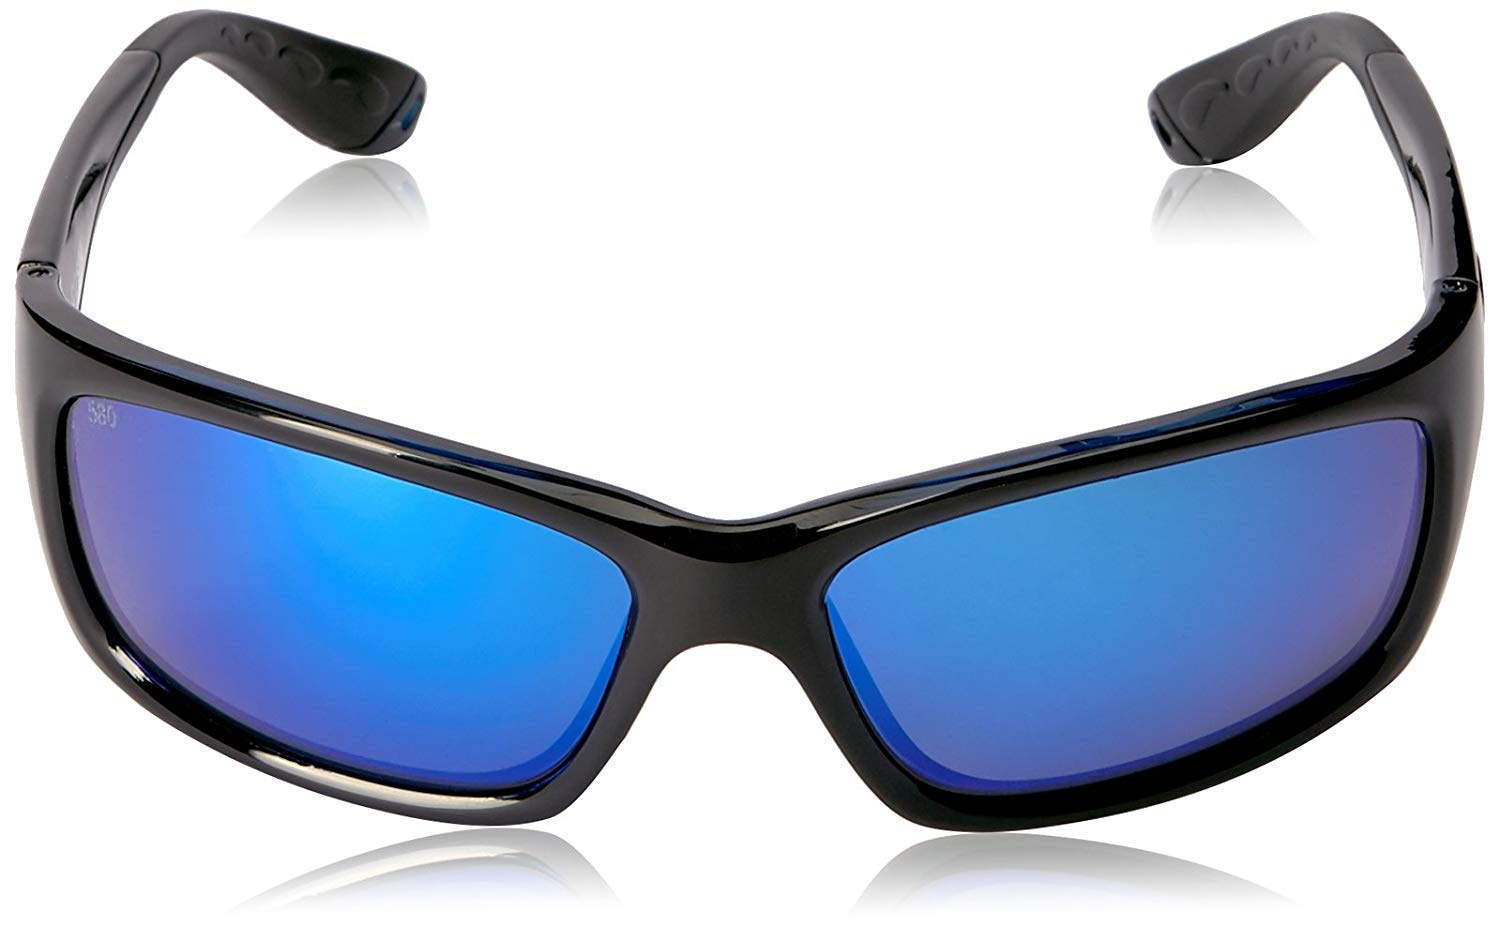 7bfb352544588 Polarized Sunglasses Sunglasses  Buy Online from Fishpond.co.nz